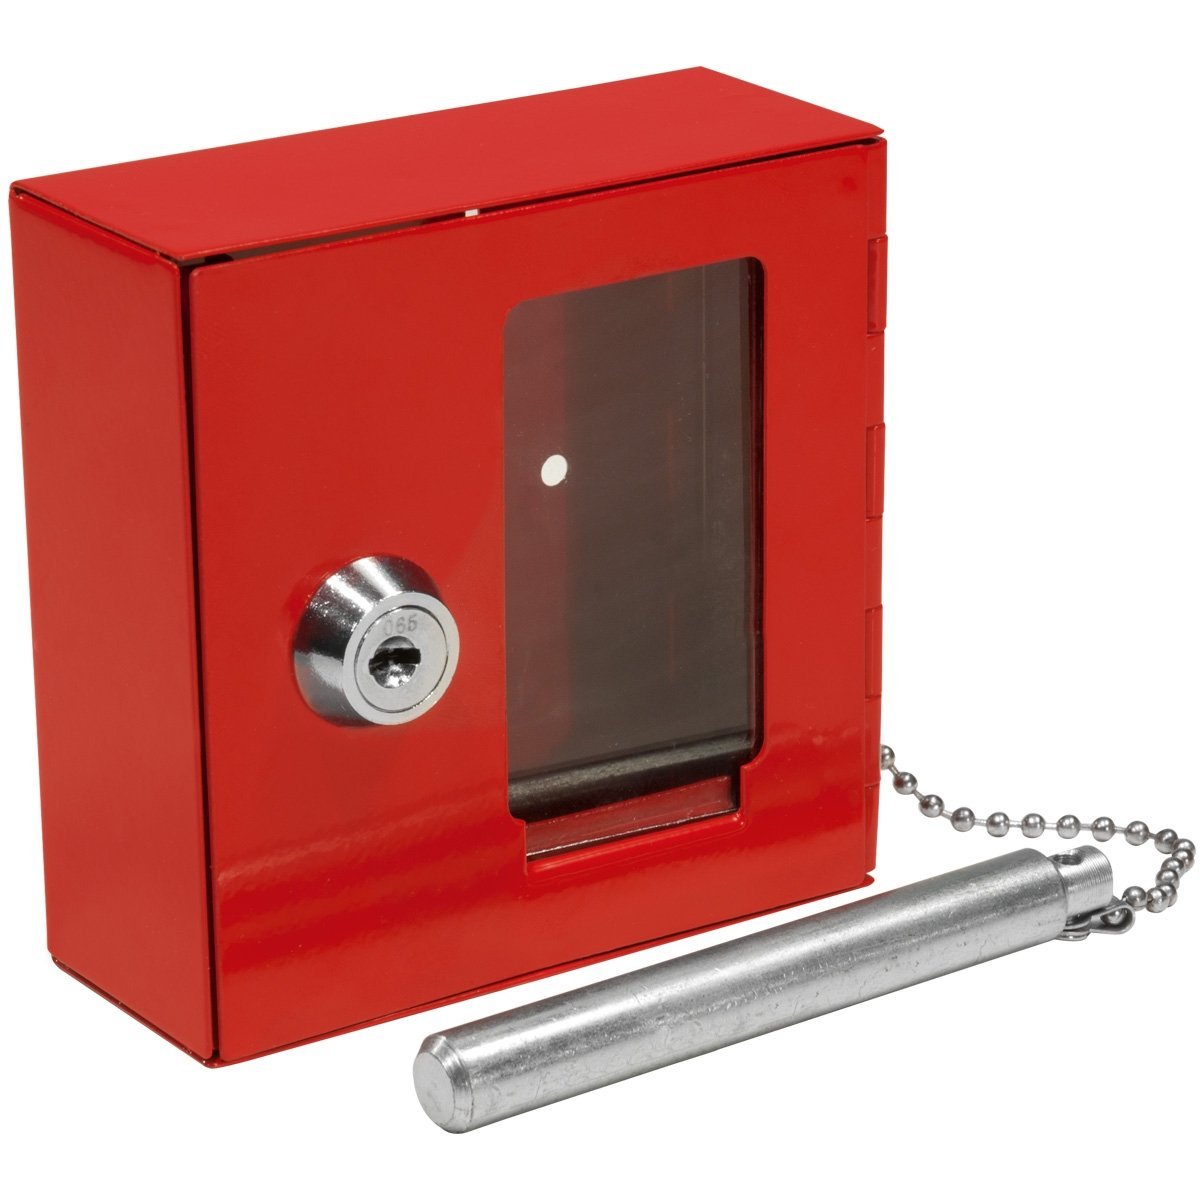 Barska AX11838 Breakable Emergency Key Box with Attached Hammer (Red)